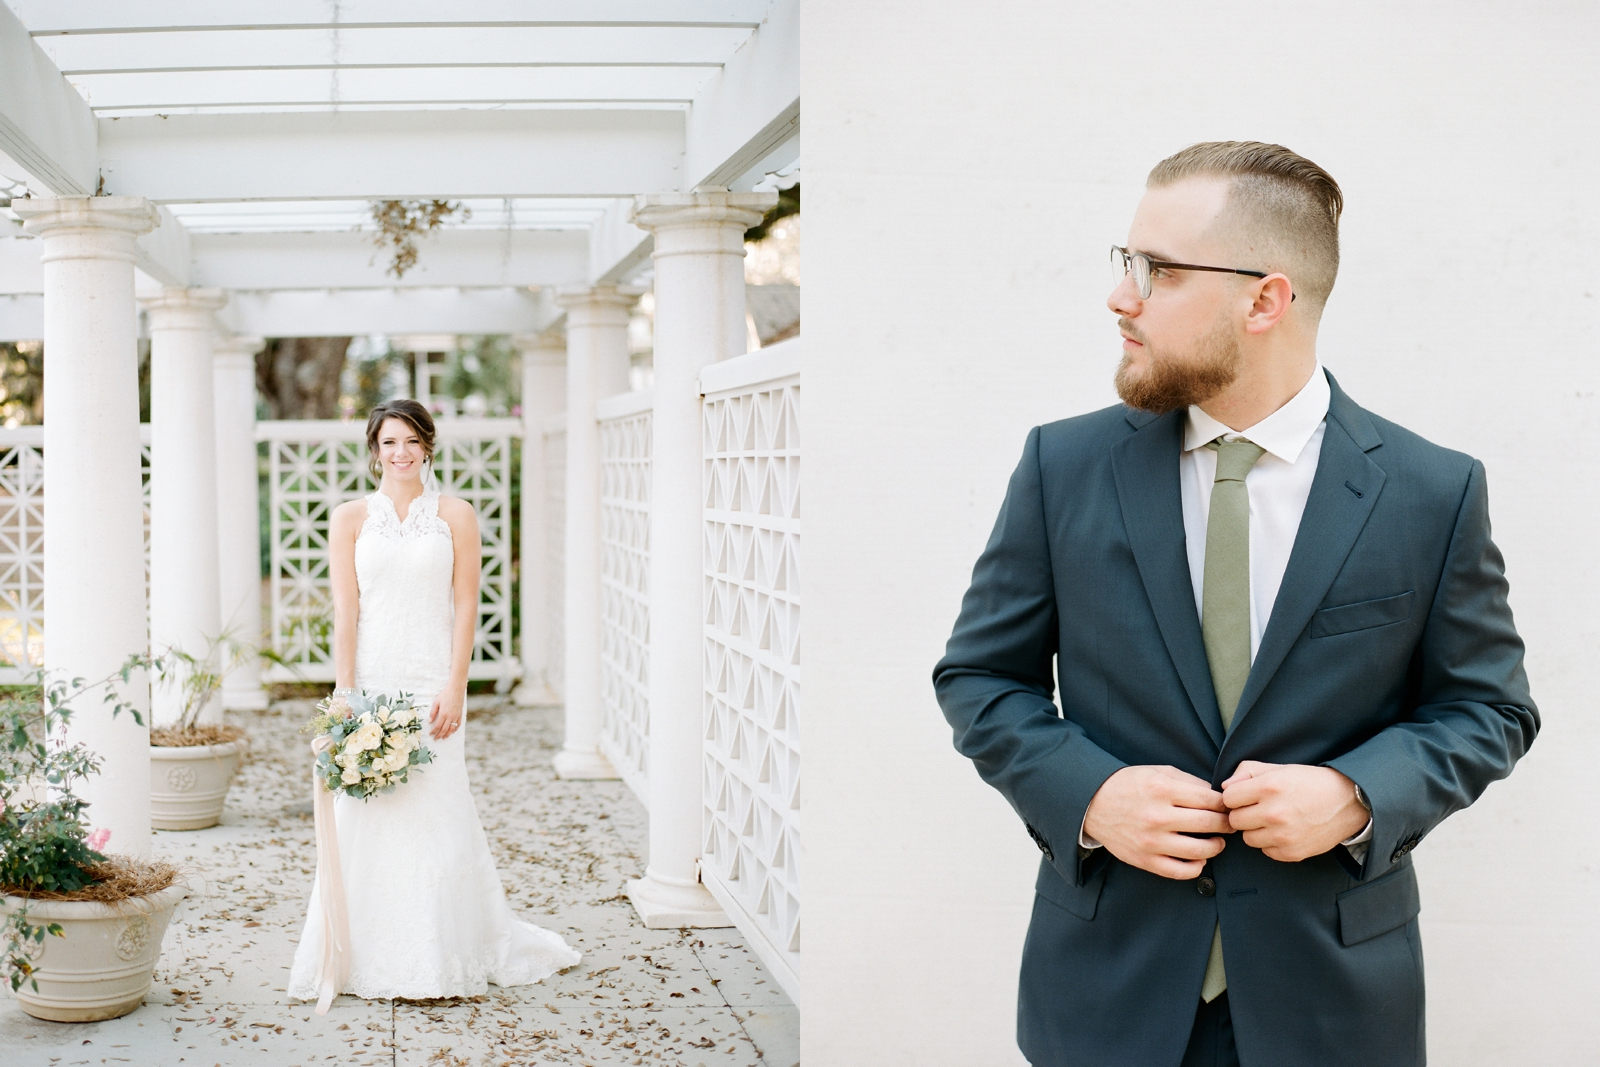 goodwood museum tallahassee wedding photographer - tallahassee florida - shannon griffin_0017.jpg